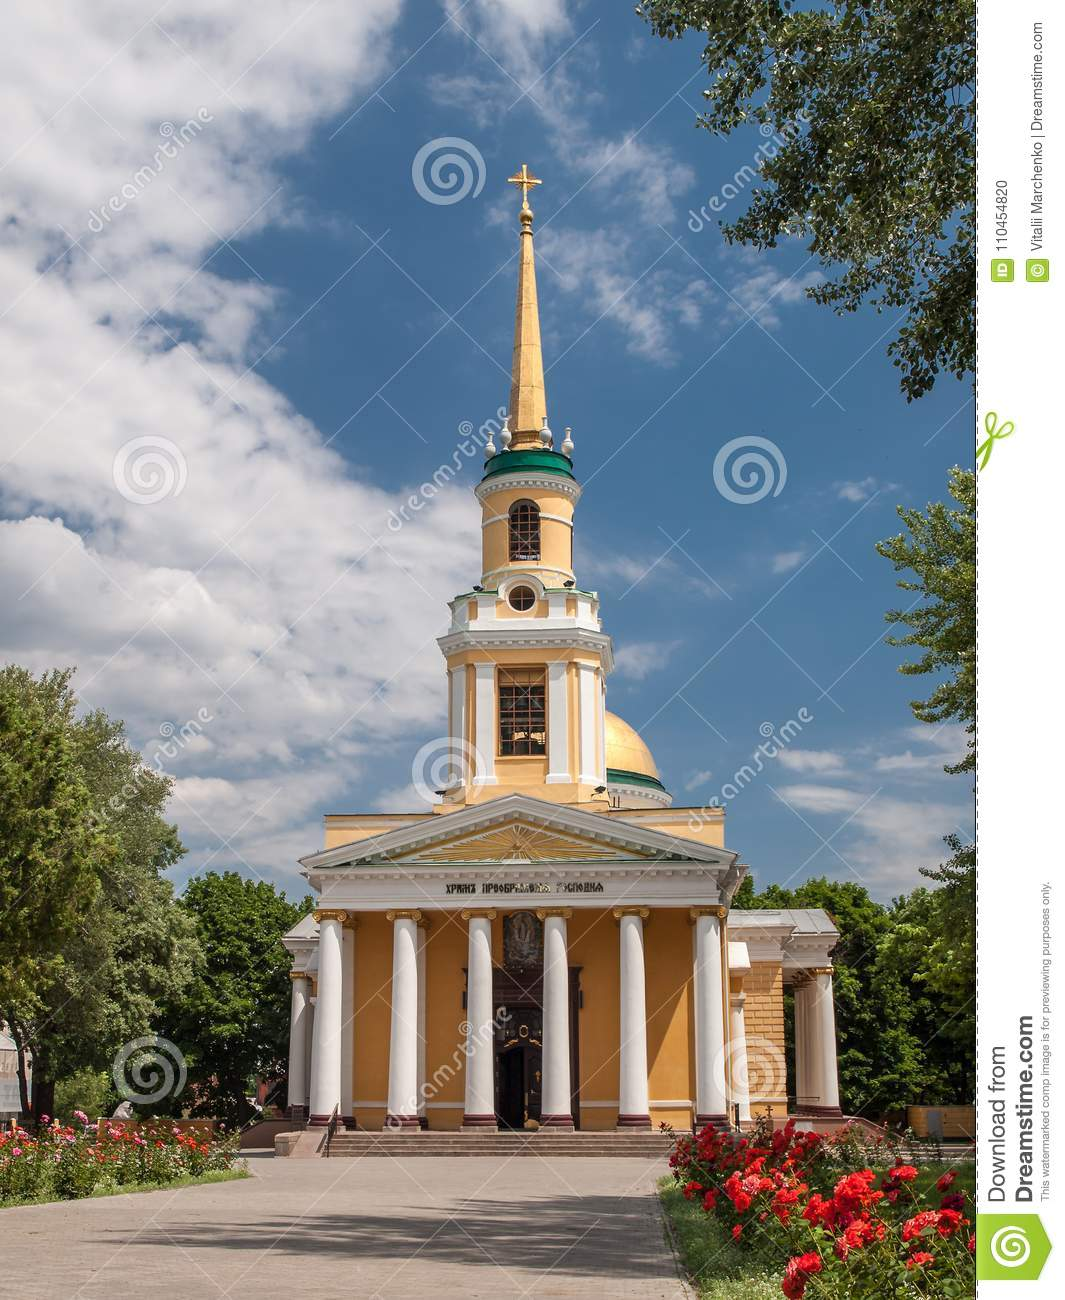 Front view of orthodox church Transfiguration Cathedral in Dnipro city, Ukraine